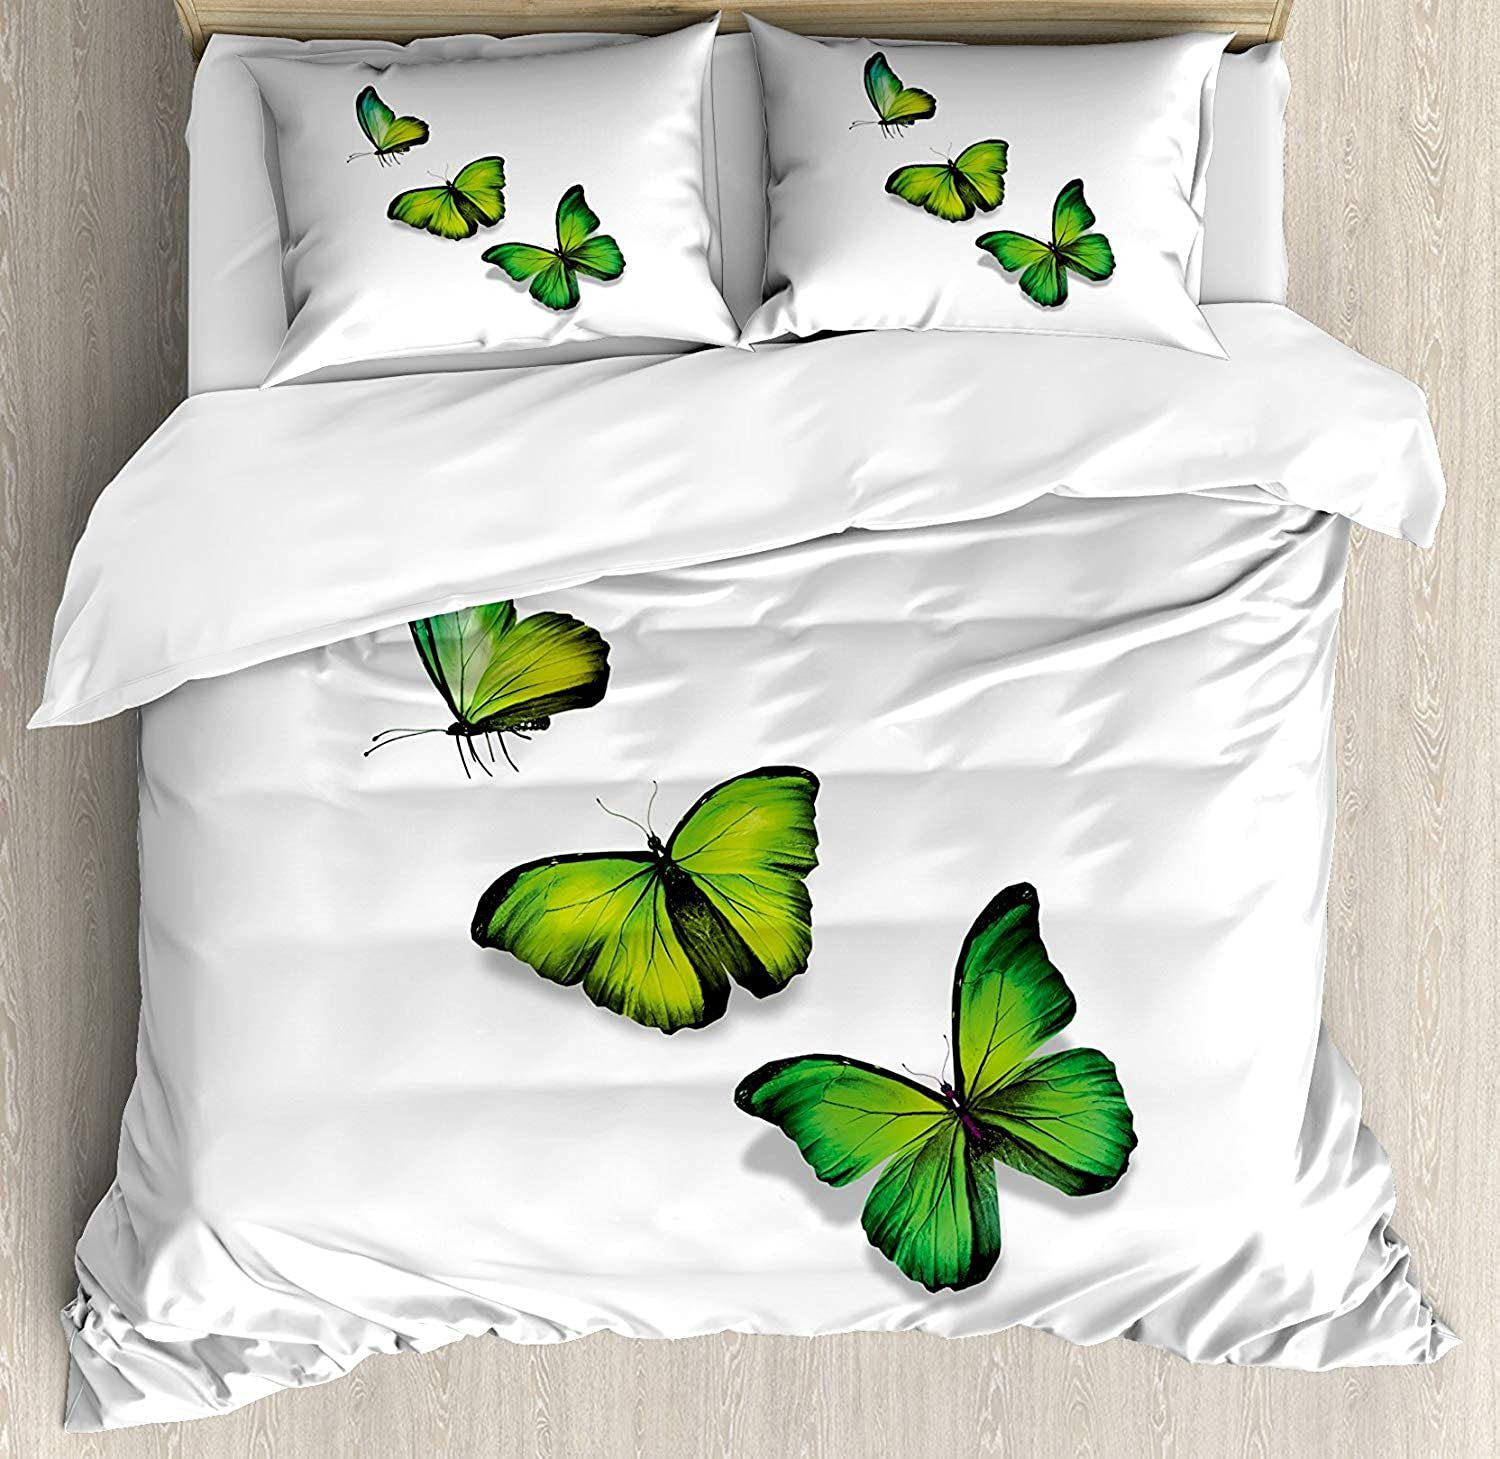 Green Duvet Cover Soft Microfiber 4 Piece Bedding Cover Set Three Vibrant Butterflies on White Backdrop Magical Spring Nature Lime Green Fern Green Black Print, Zipper Closure and Corner Ties